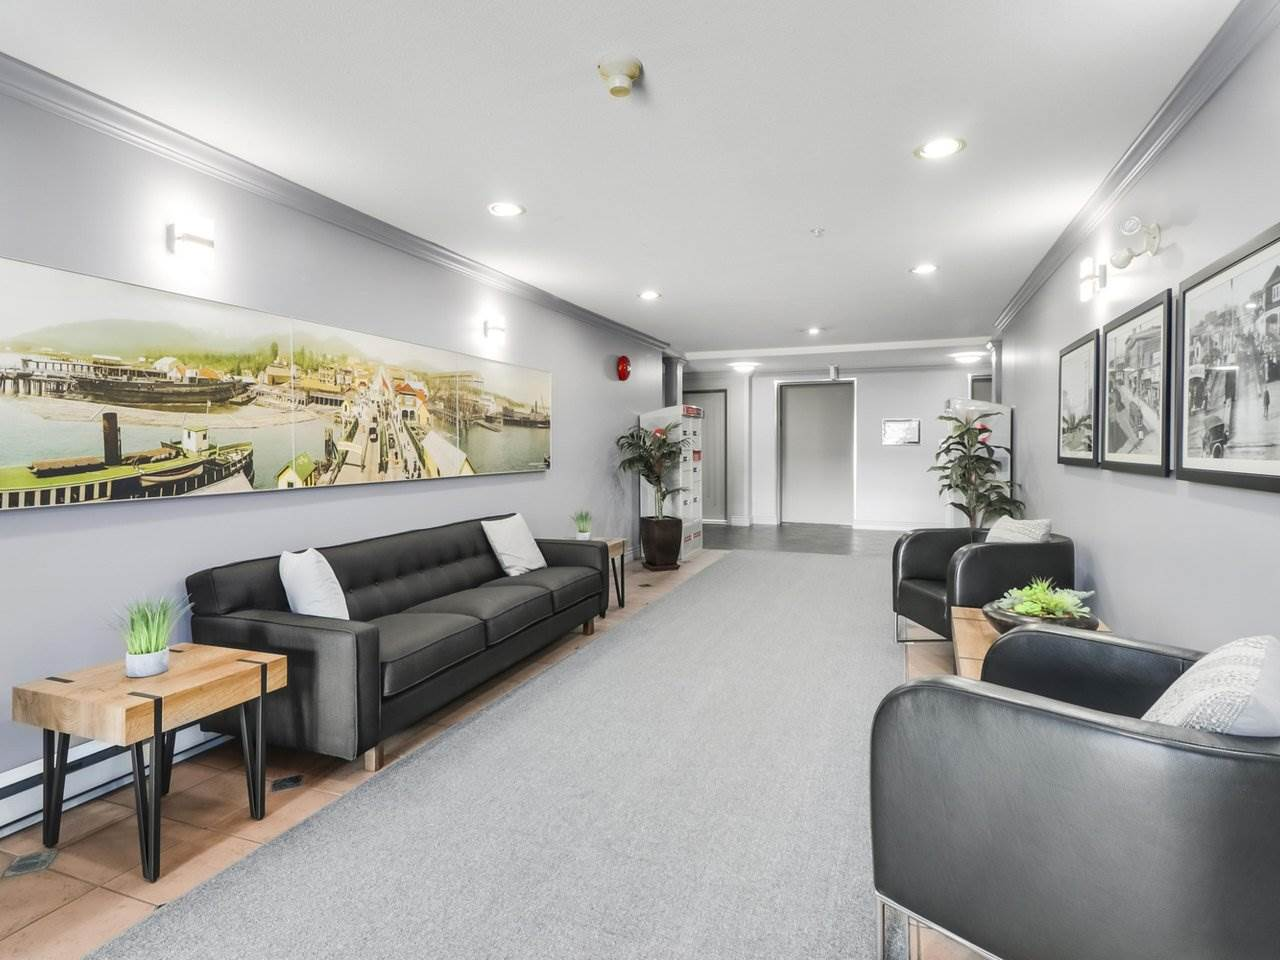 318 332 LONSDALE AVENUE - Lower Lonsdale Apartment/Condo for sale, 1 Bedroom (R2511353) - #21